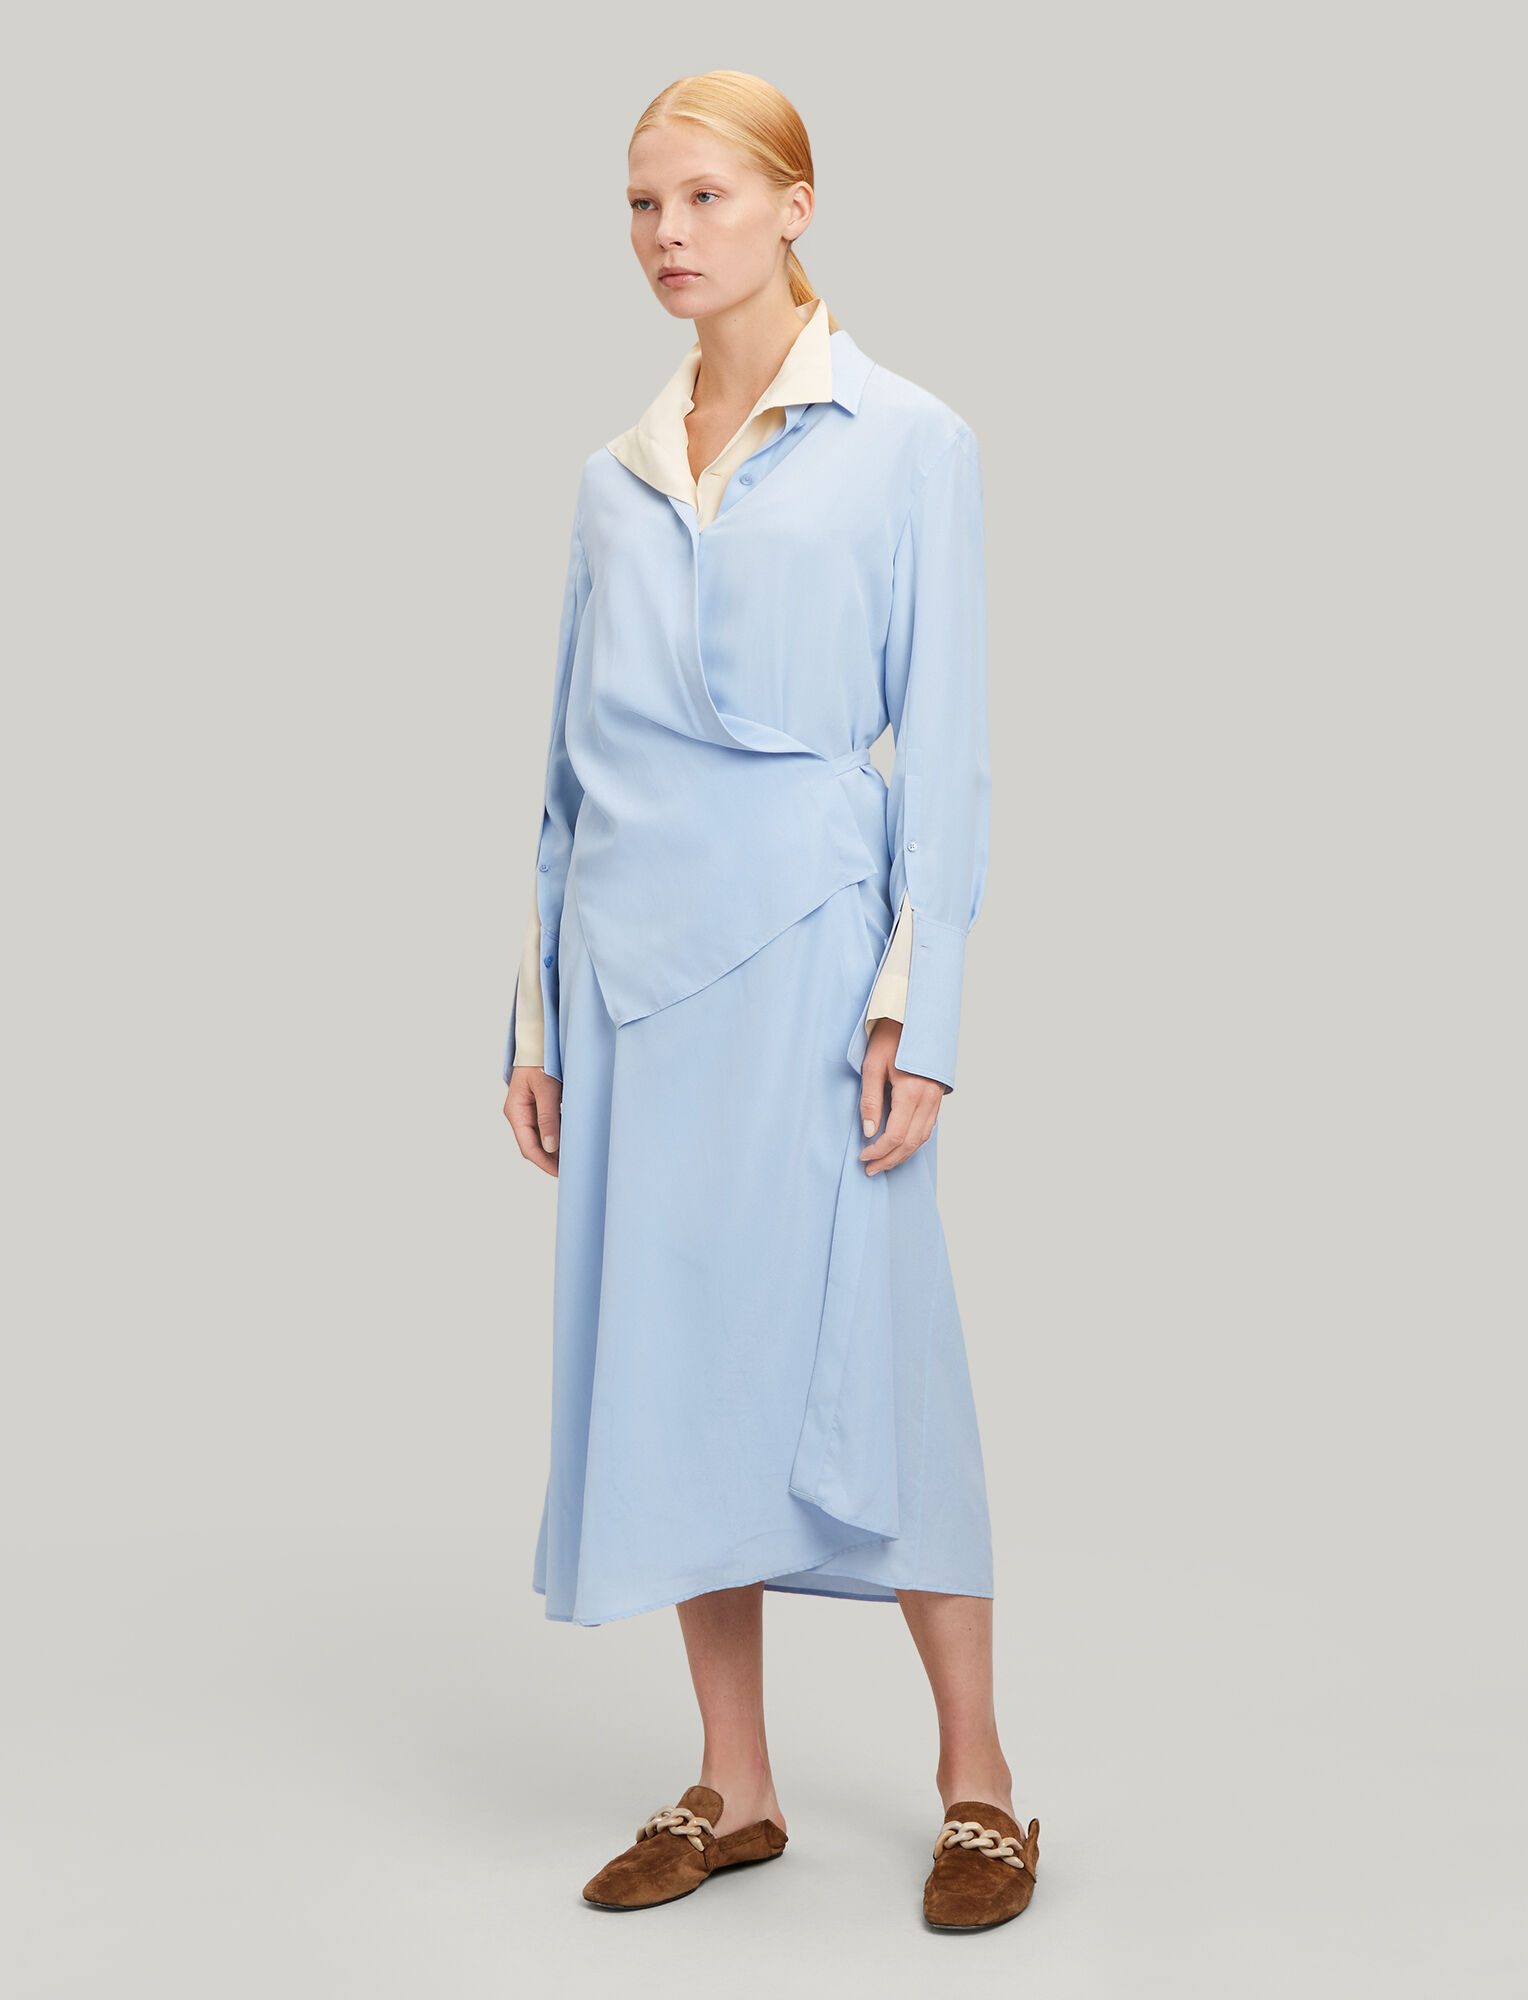 Joseph, Claudi Silk Toile Dress, in PERIWINKLE